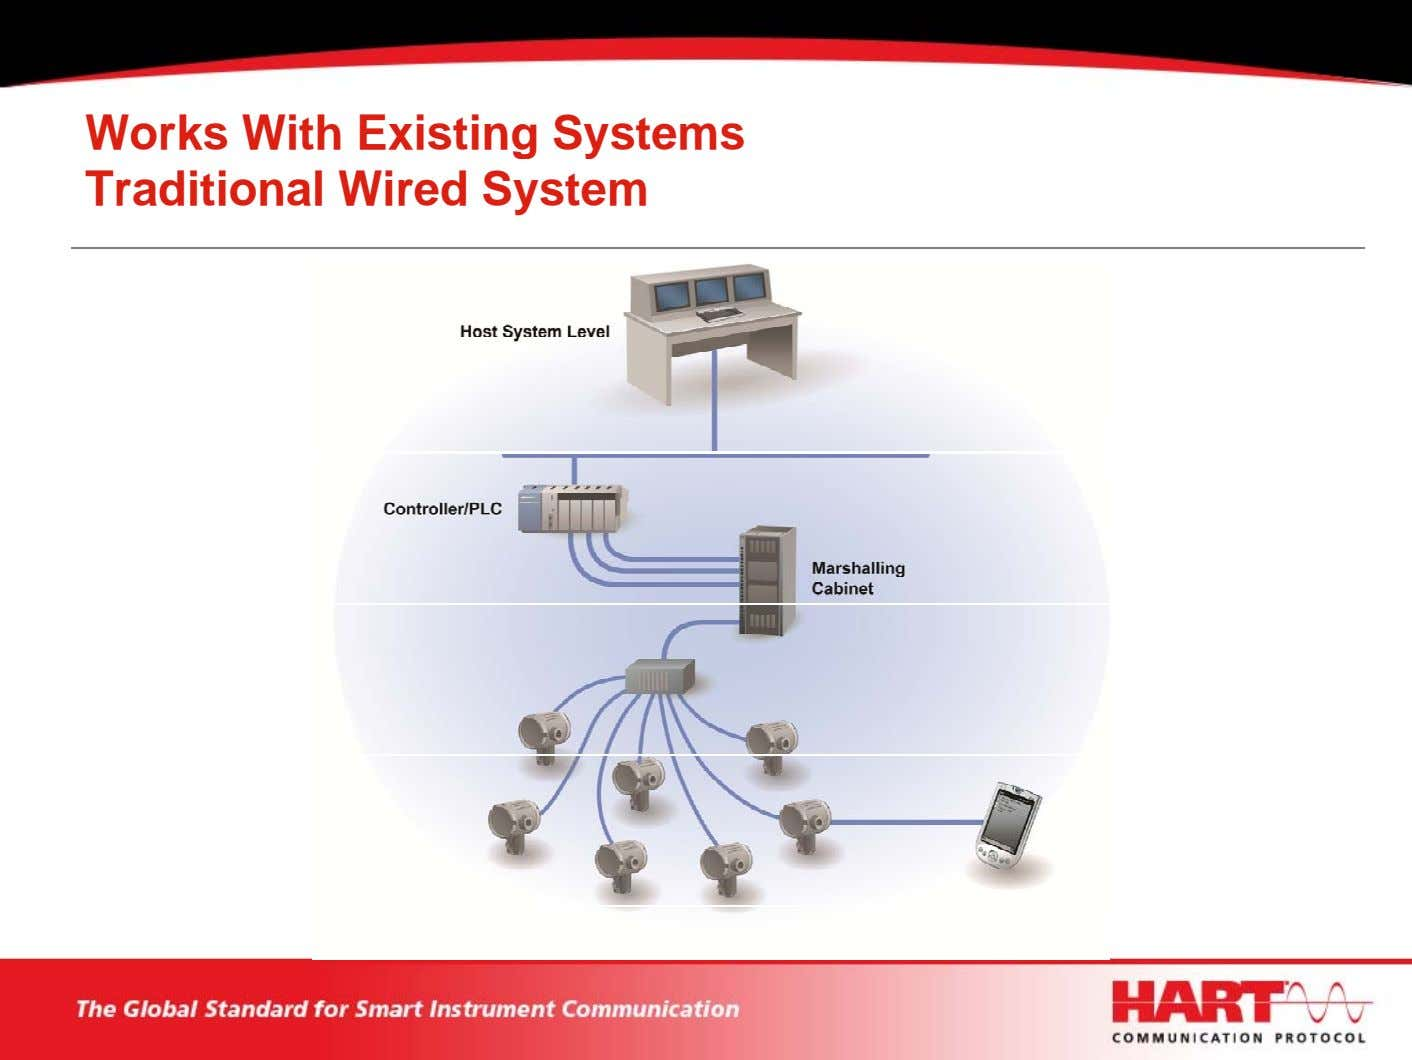 Works With Existing Systems Traditional Wired System